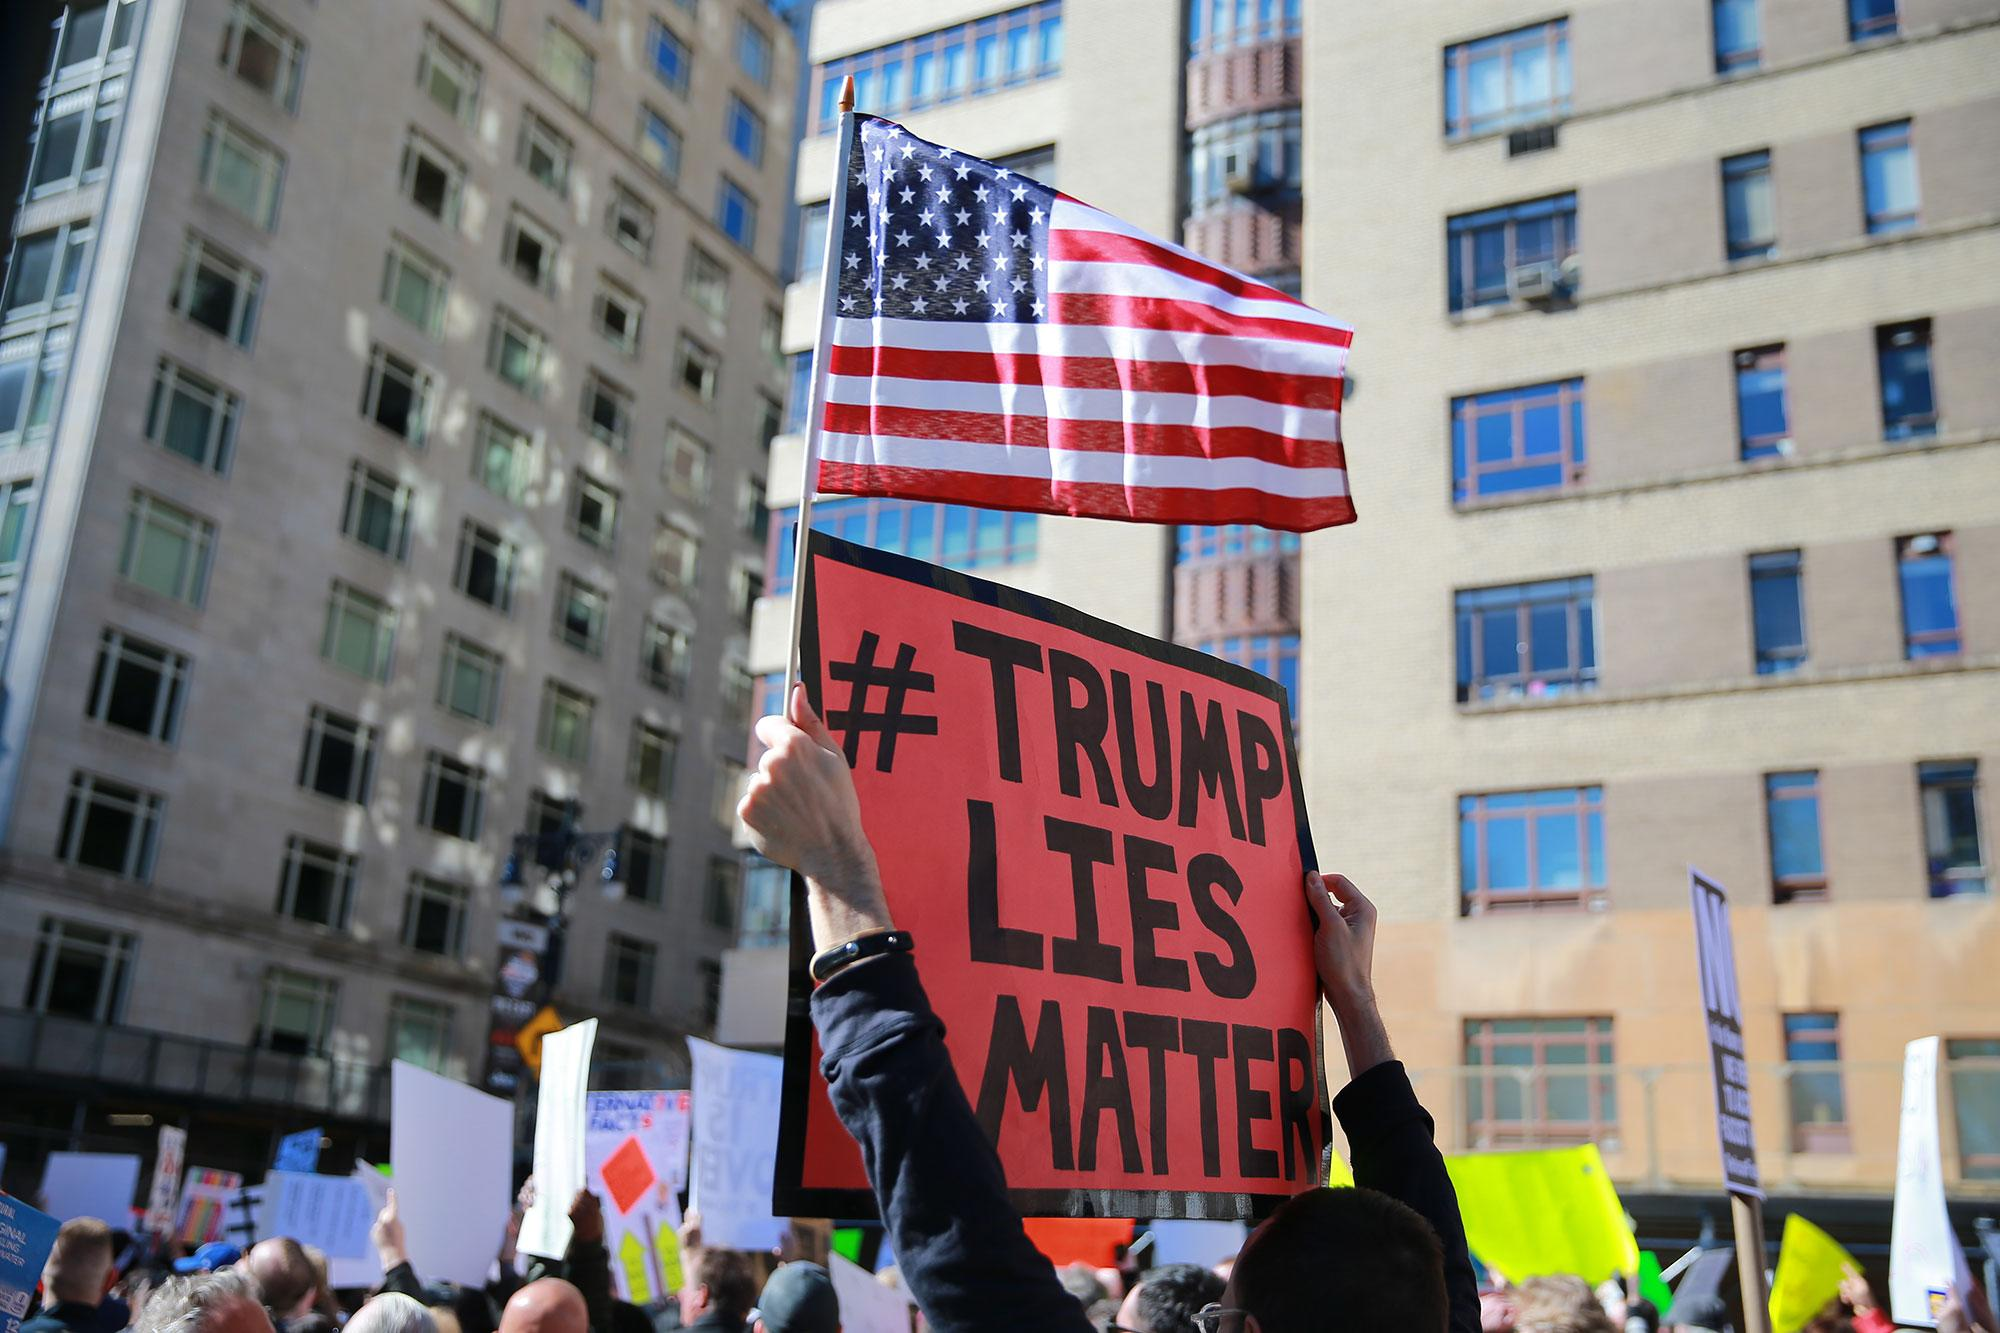 "<p>A demonstrator holds up a sign and U.S. flag during the ""Not My President's Day"" rally at Central Park West in New York City on Feb. 20, 2017. (Gordon Donovan/Yahoo News) </p>"